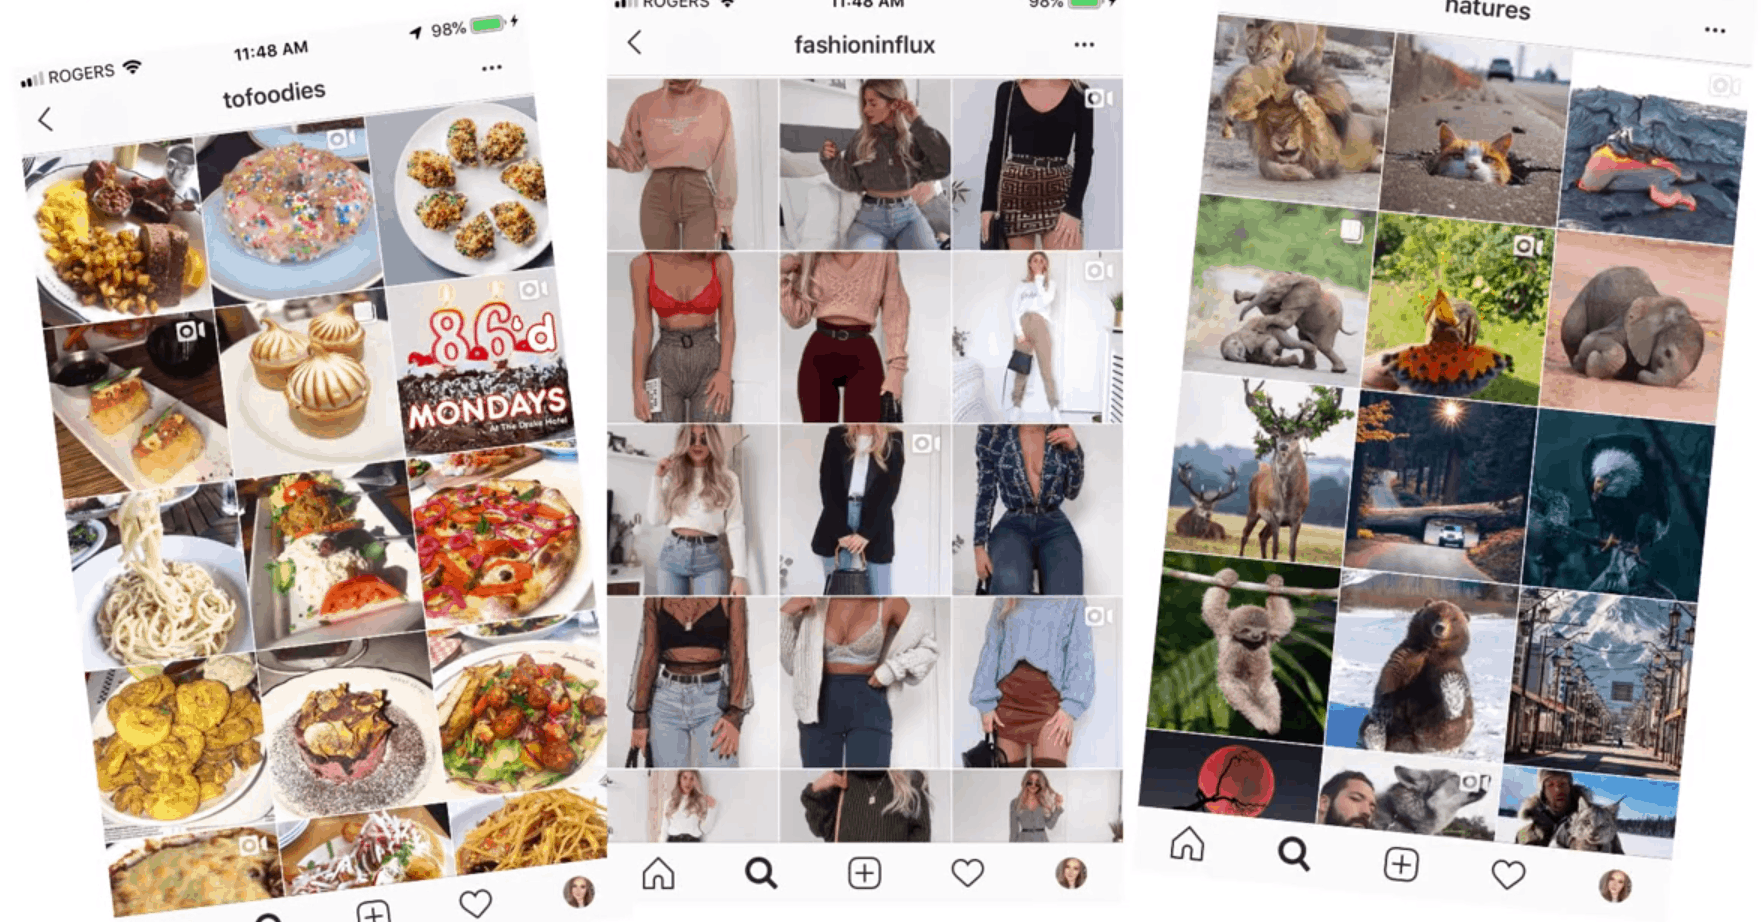 Examples of themed Instagram accounts